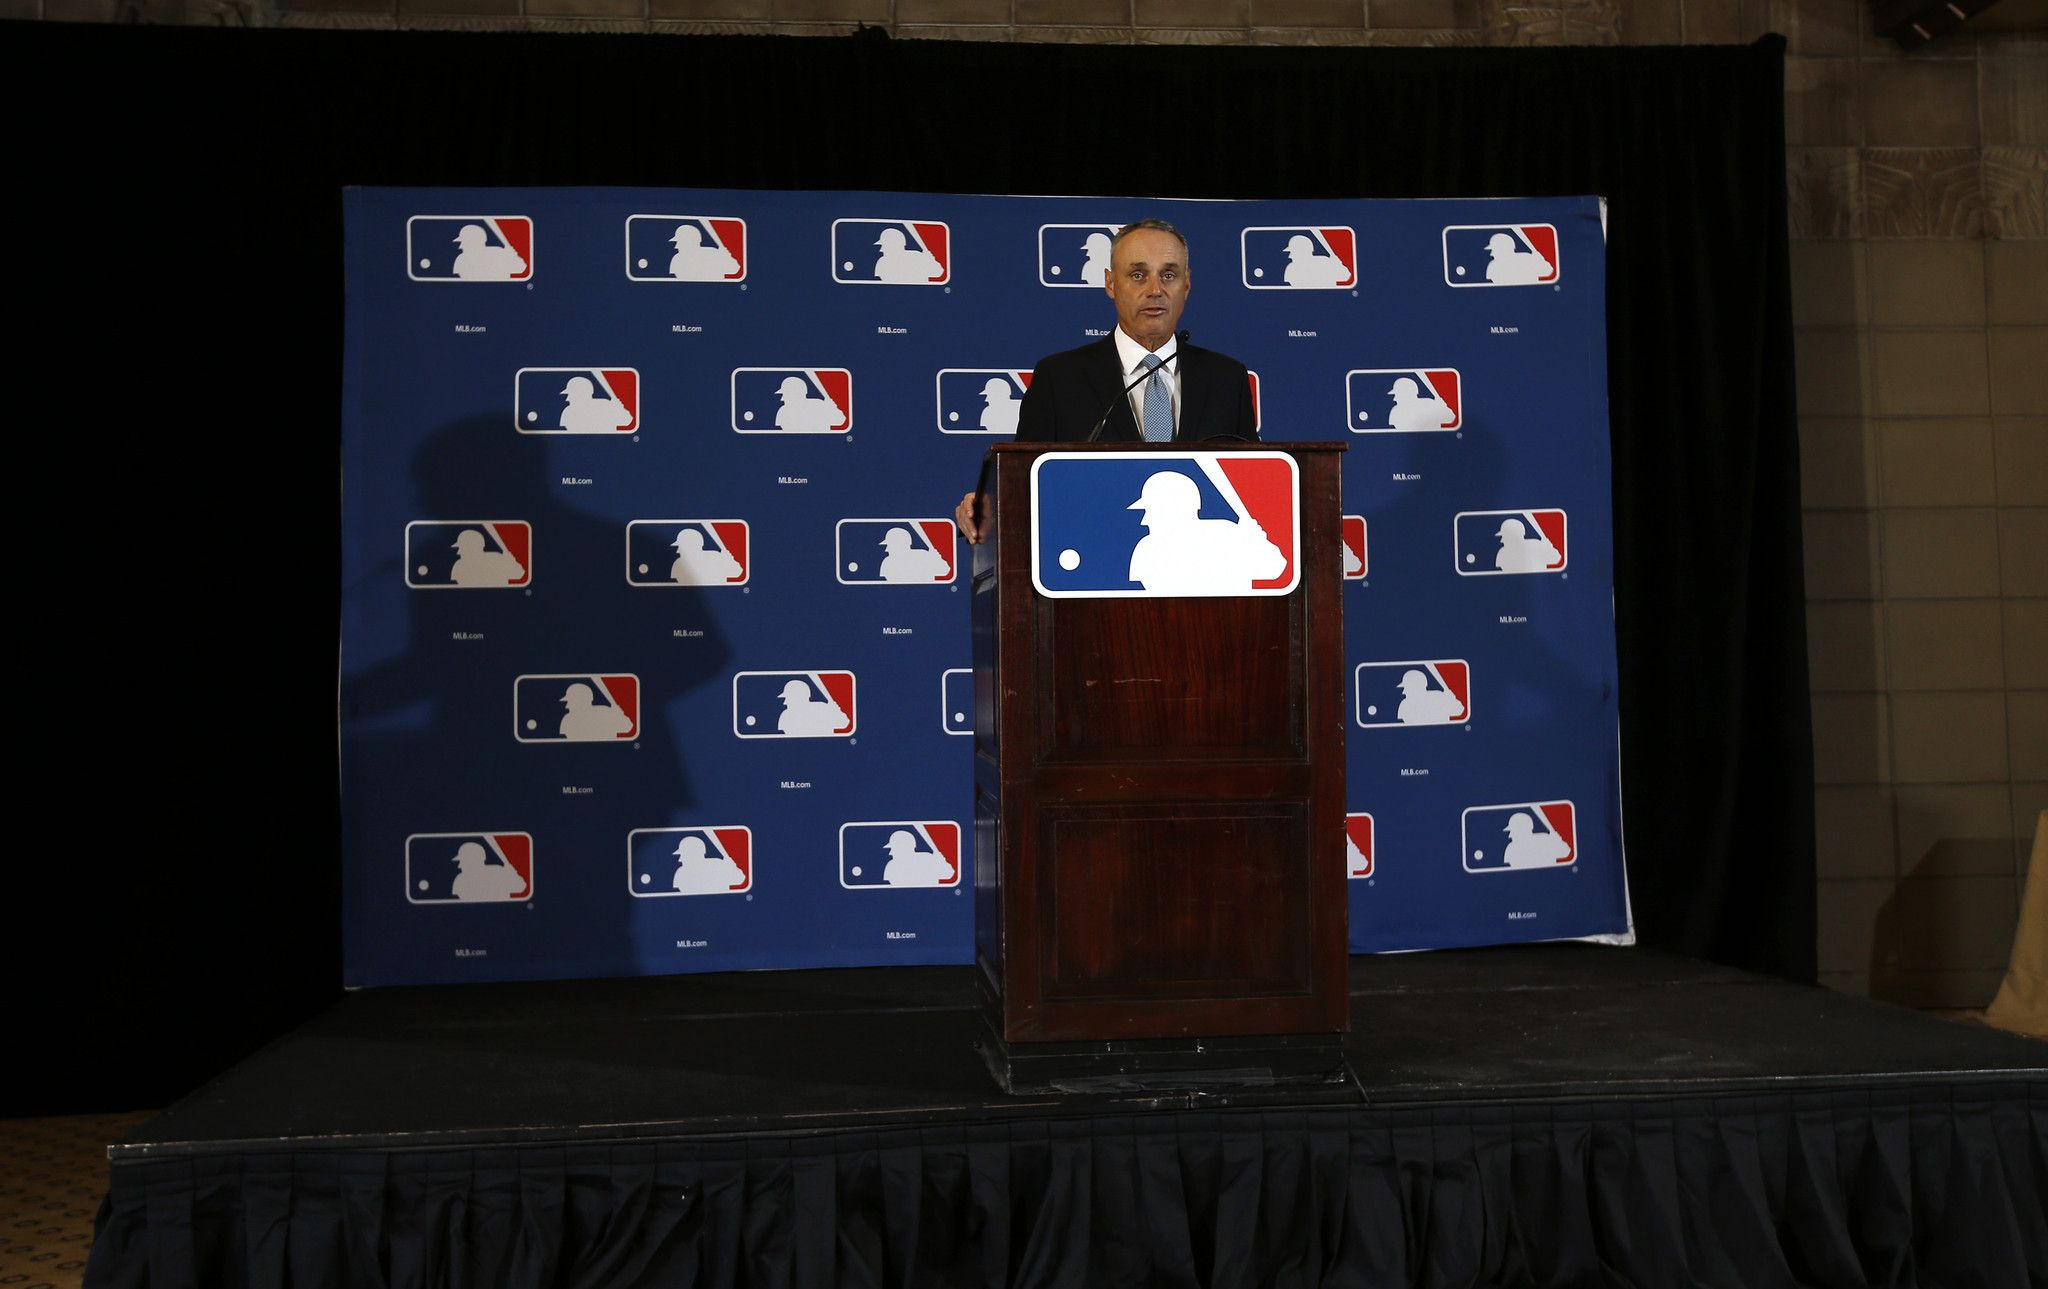 Mlb Expansion To 32 Teams Inevitable Commissioner Says The Expanse Mlb Teams